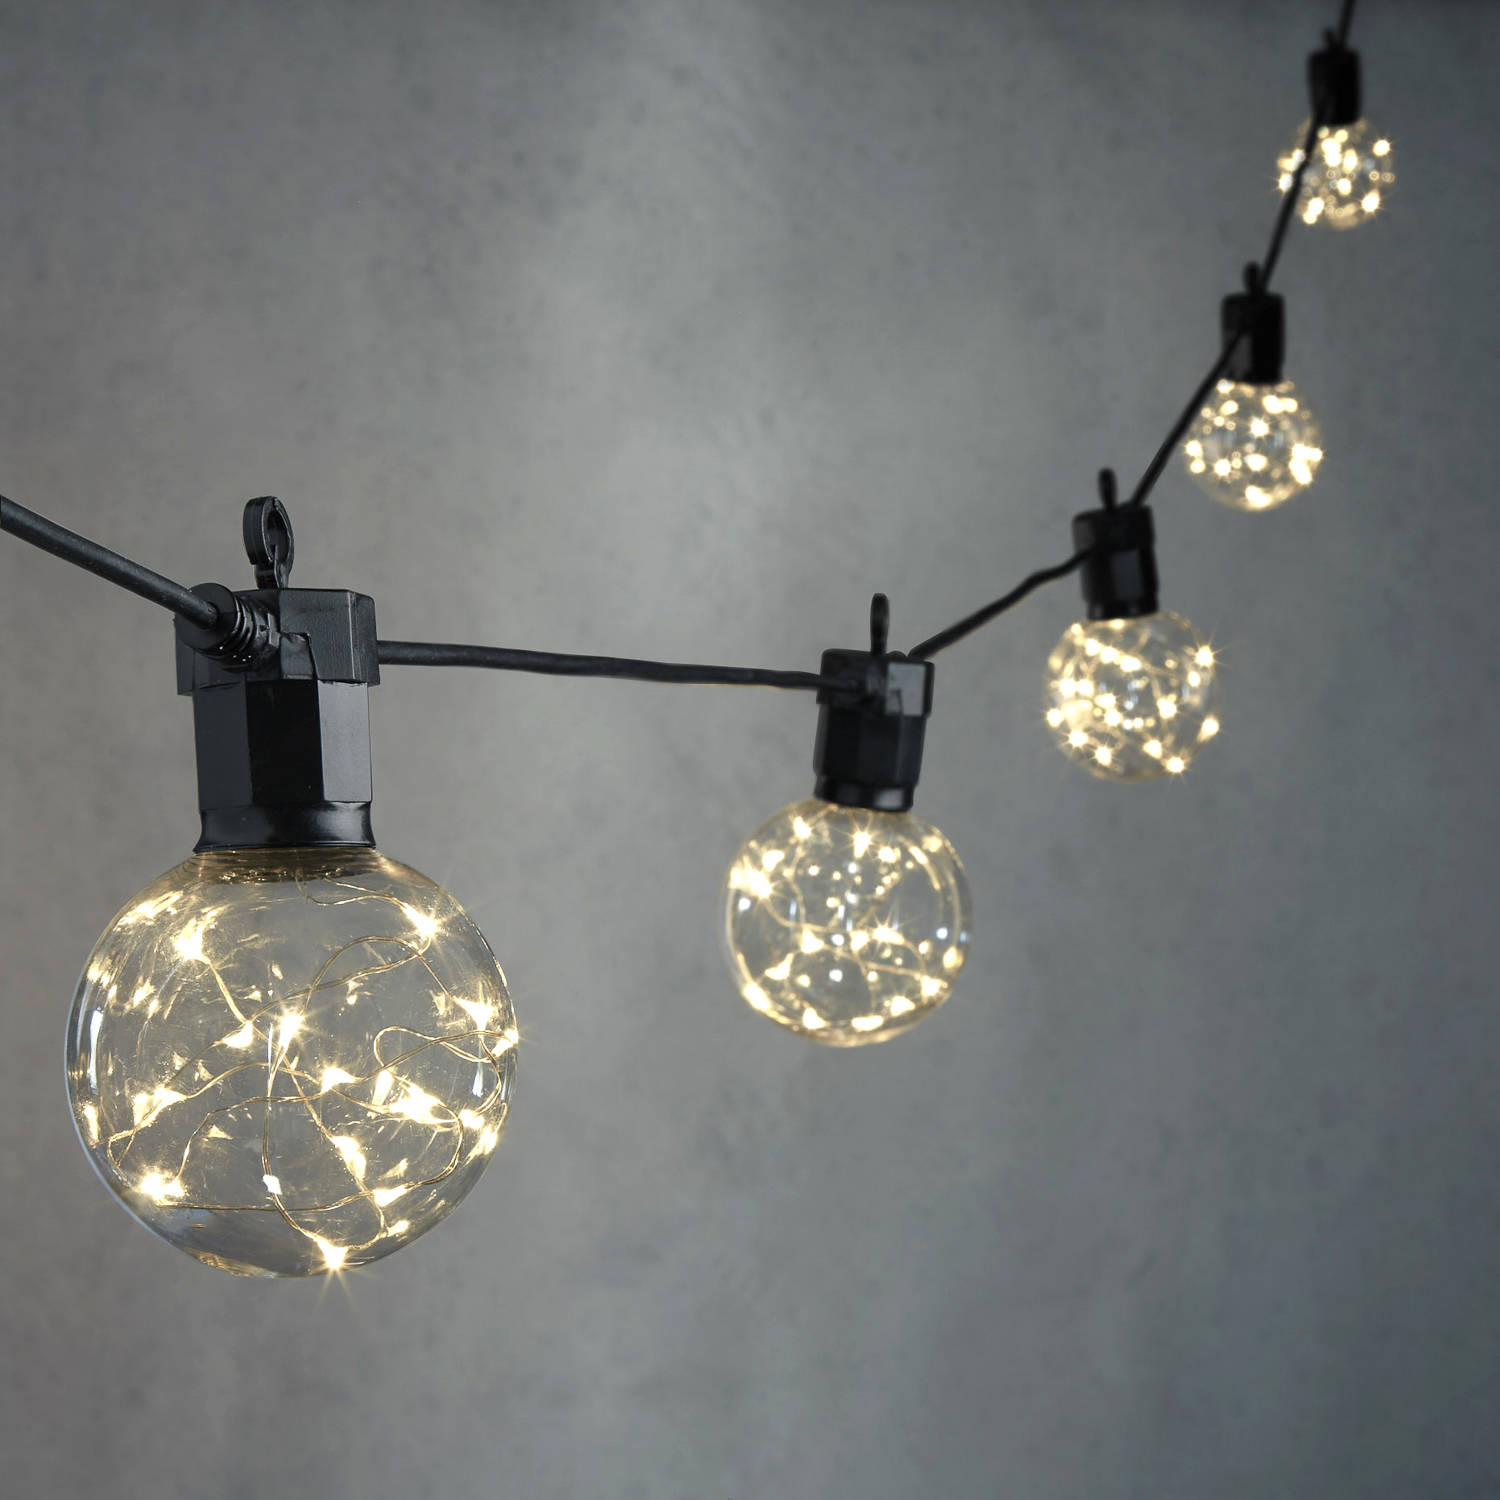 Lights.com String Lights Decorative String Lights Celestial Globe String Lights with ...